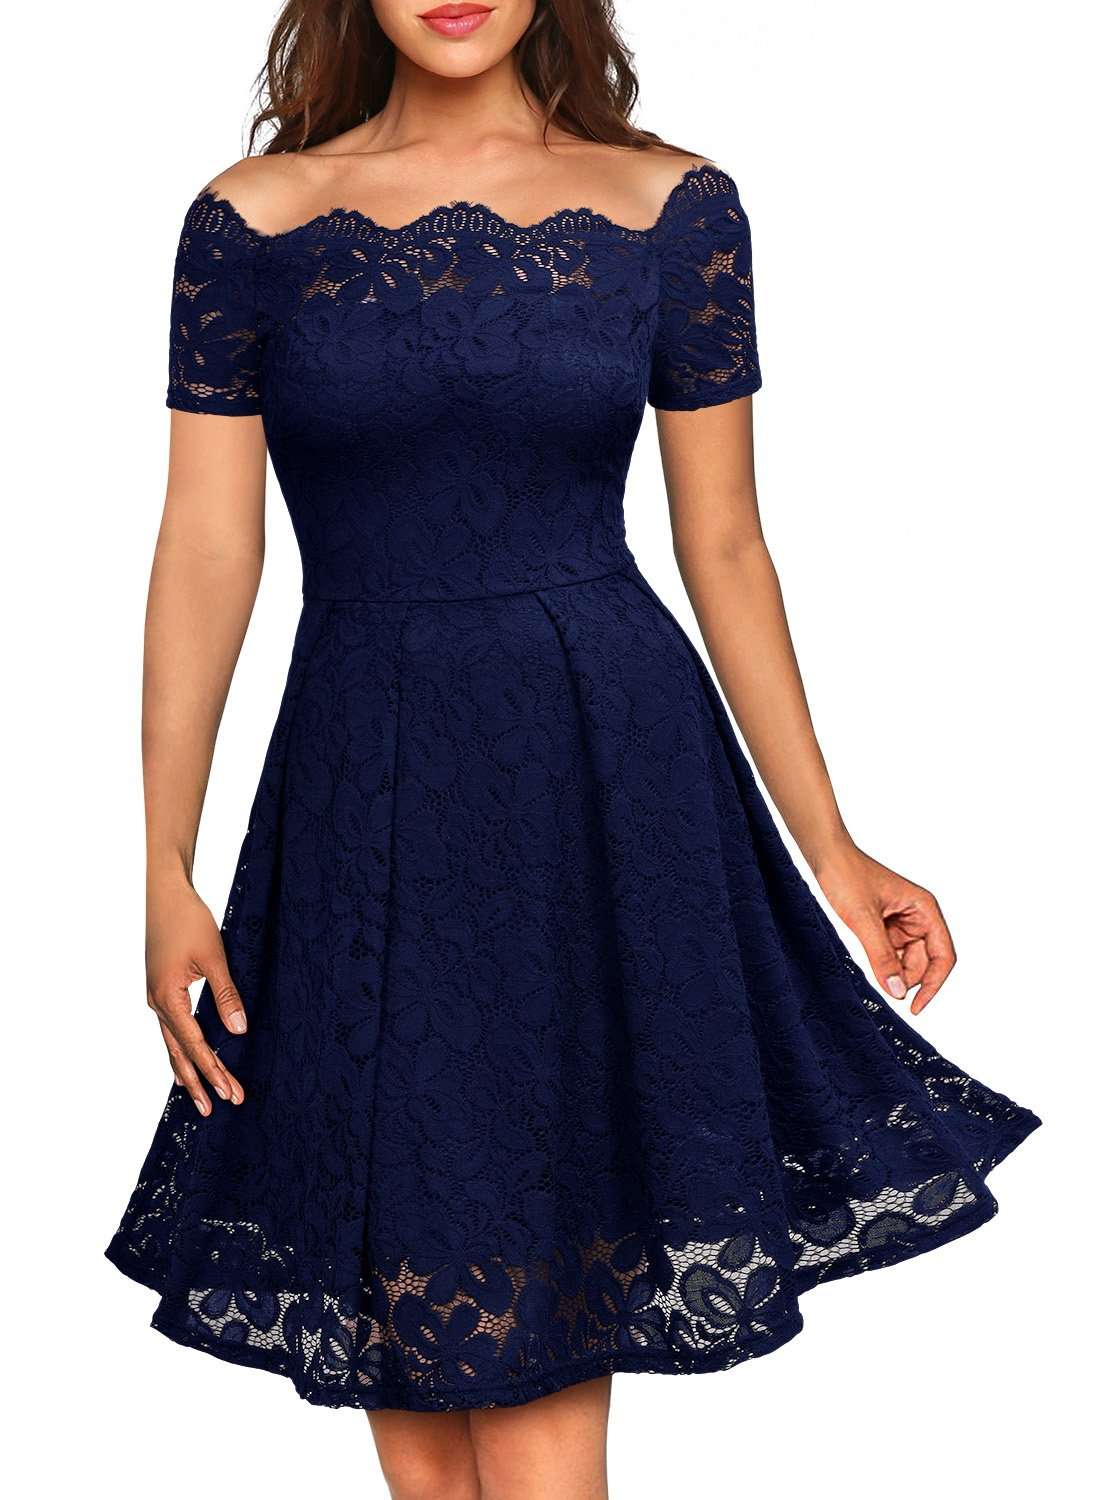 MissMay Women's Vintage Floral Lace Short Sleeve Boat Neck Cocktail Formal Swing Dress (Small,E-Navy Blue Short Sleeve)